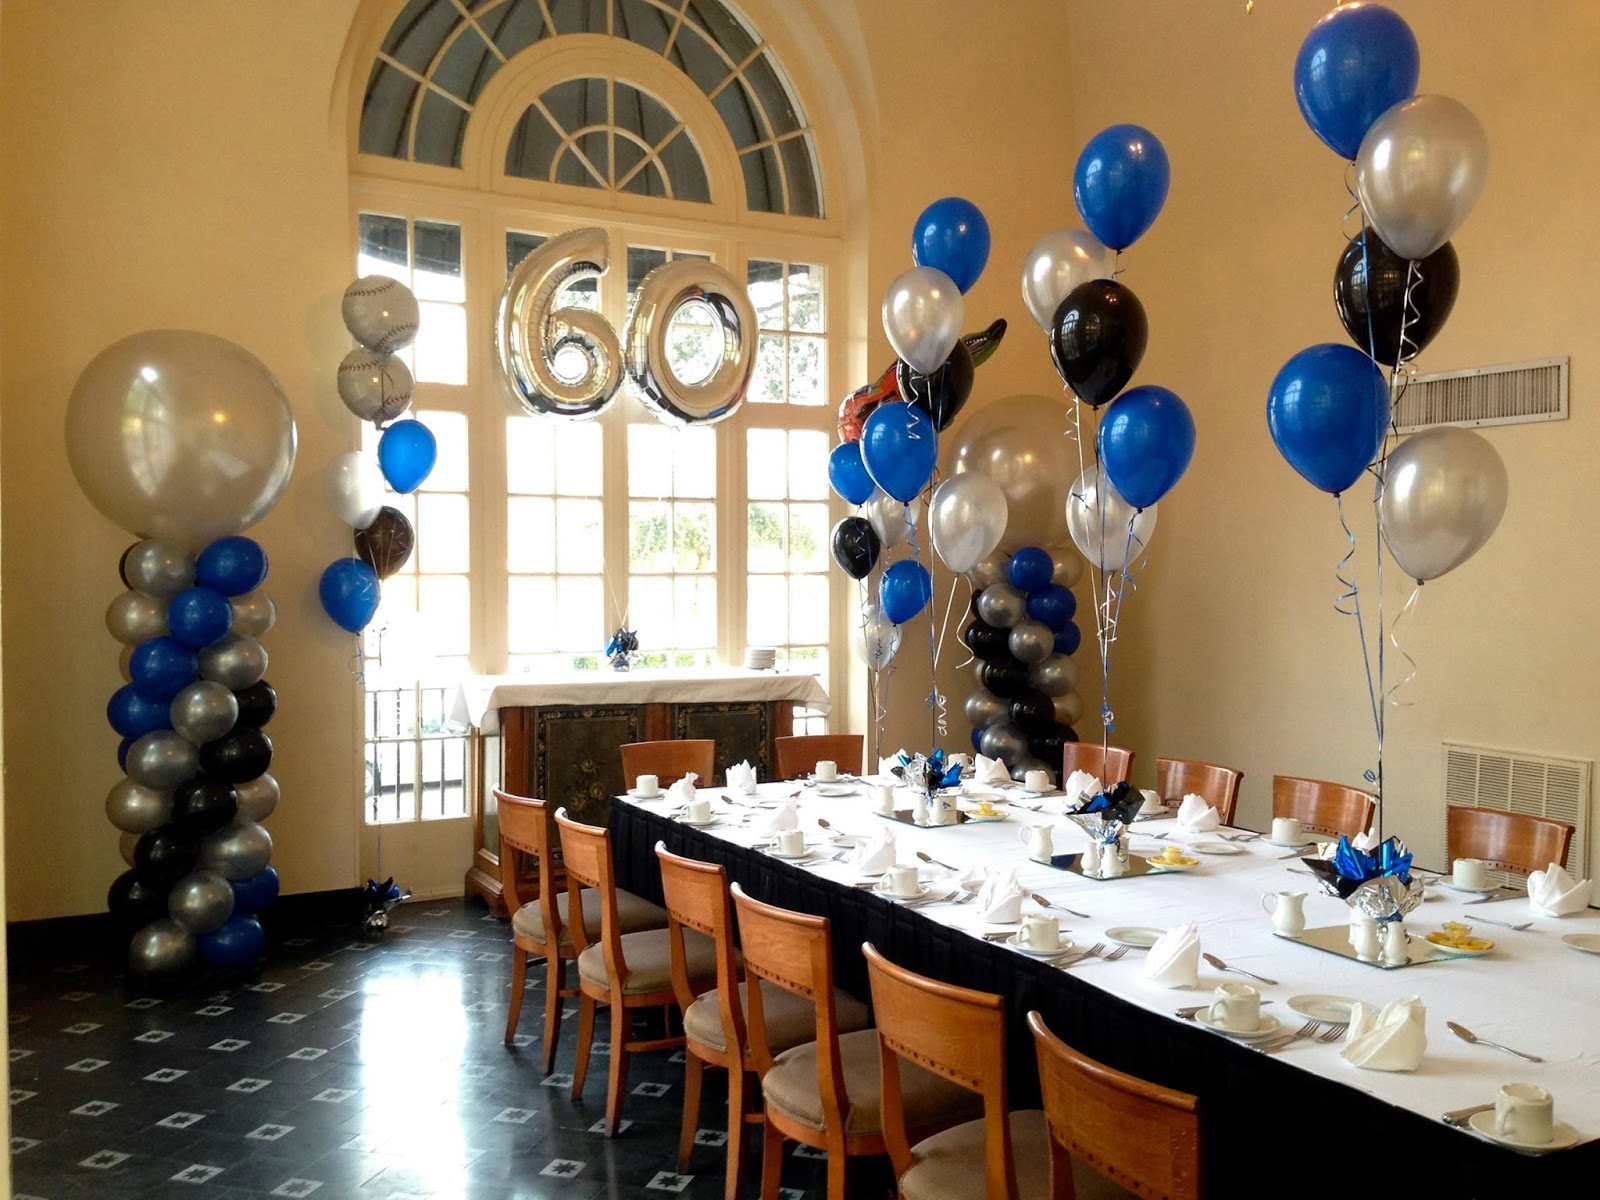 Party people event decorating company 60th birthday party for 60th birthday decoration ideas